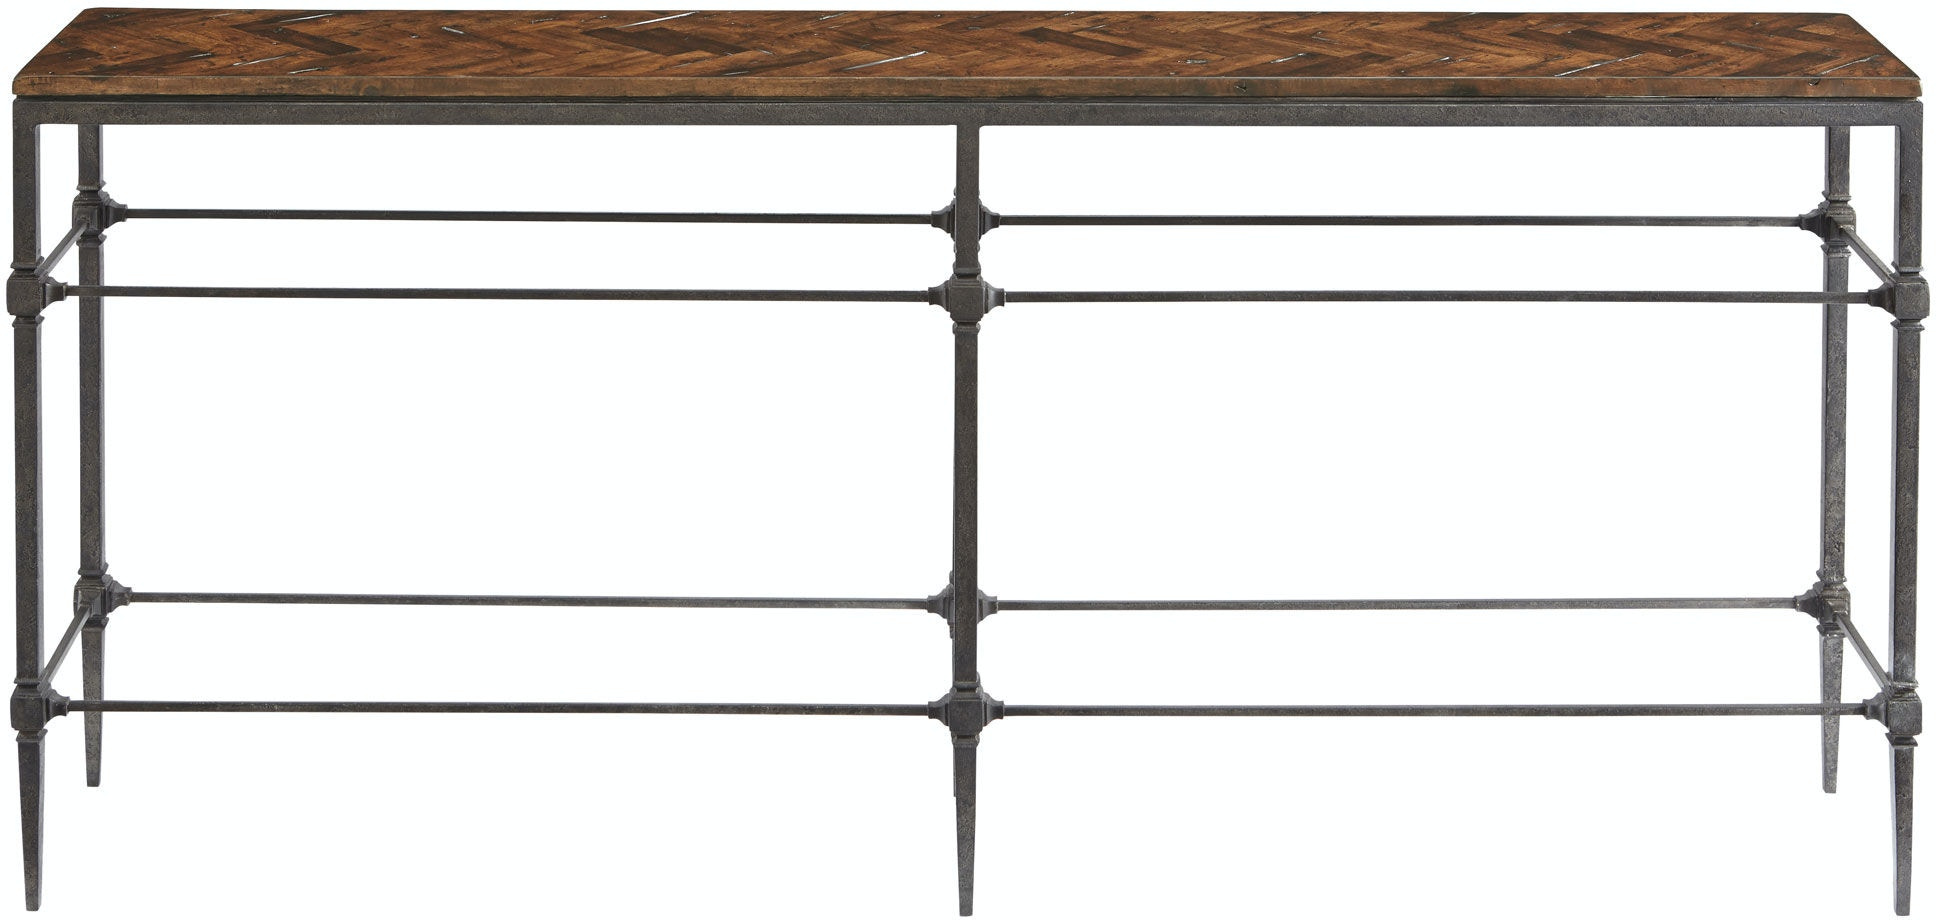 Bernhardt Living Room Console Table 486 911t 486 911